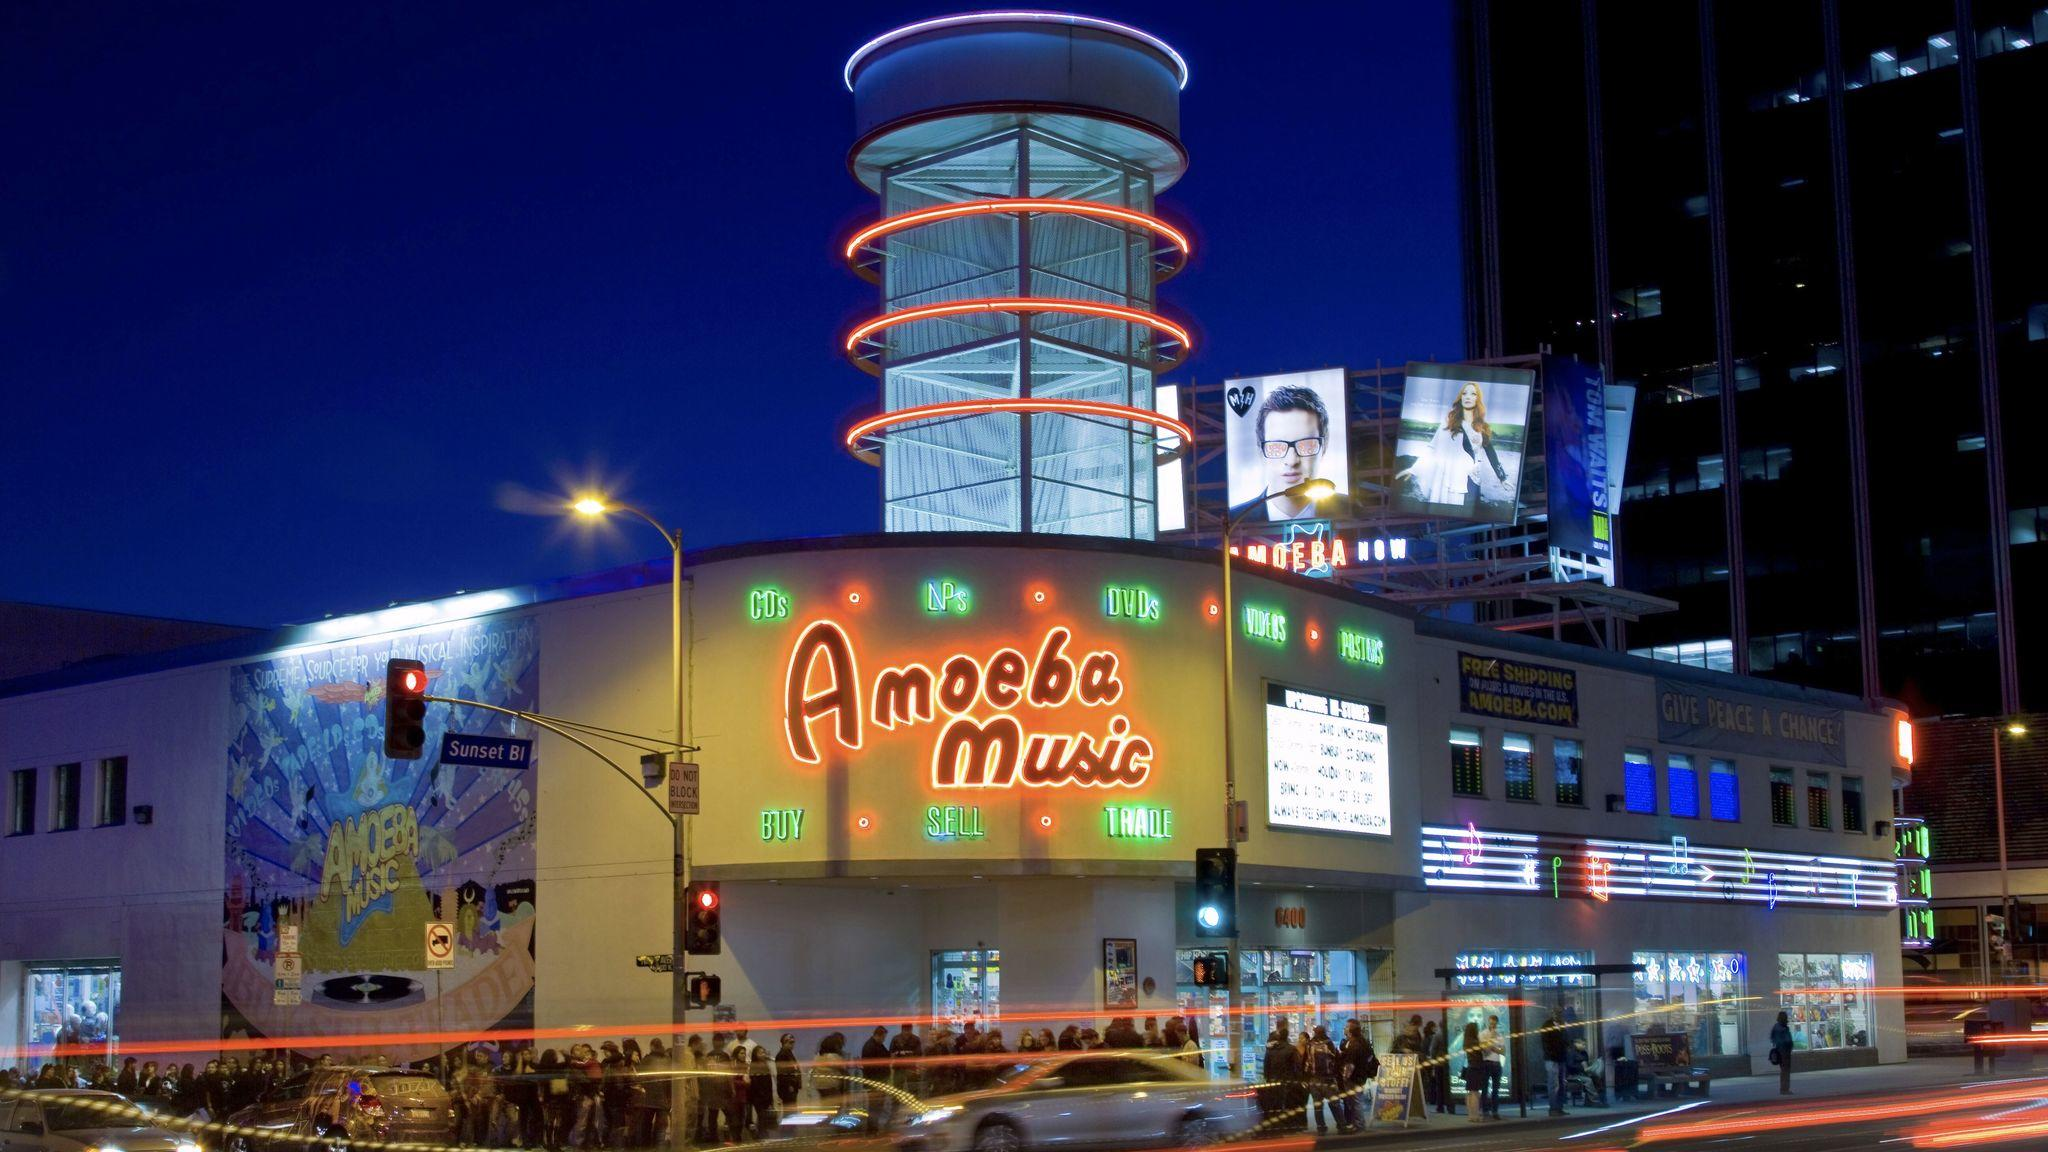 The Amoeba Music store on Sunset Boulevard. (Ricardo DeAratanha / Los Angeles Times)